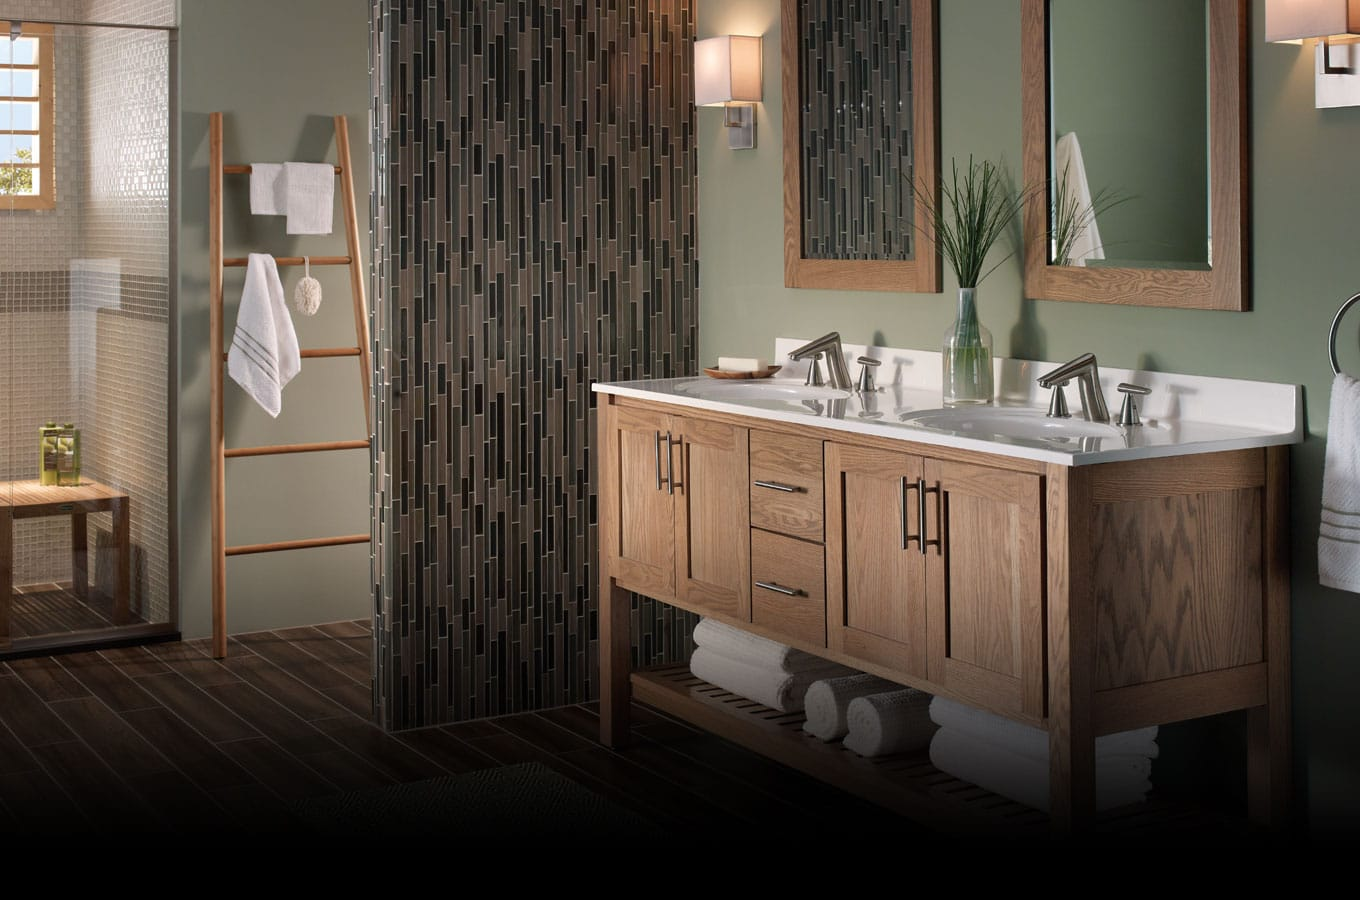 Bathroom Vanities Quad Cities kitchen cabinets, bath vanities, vanity tops, interior & exterior